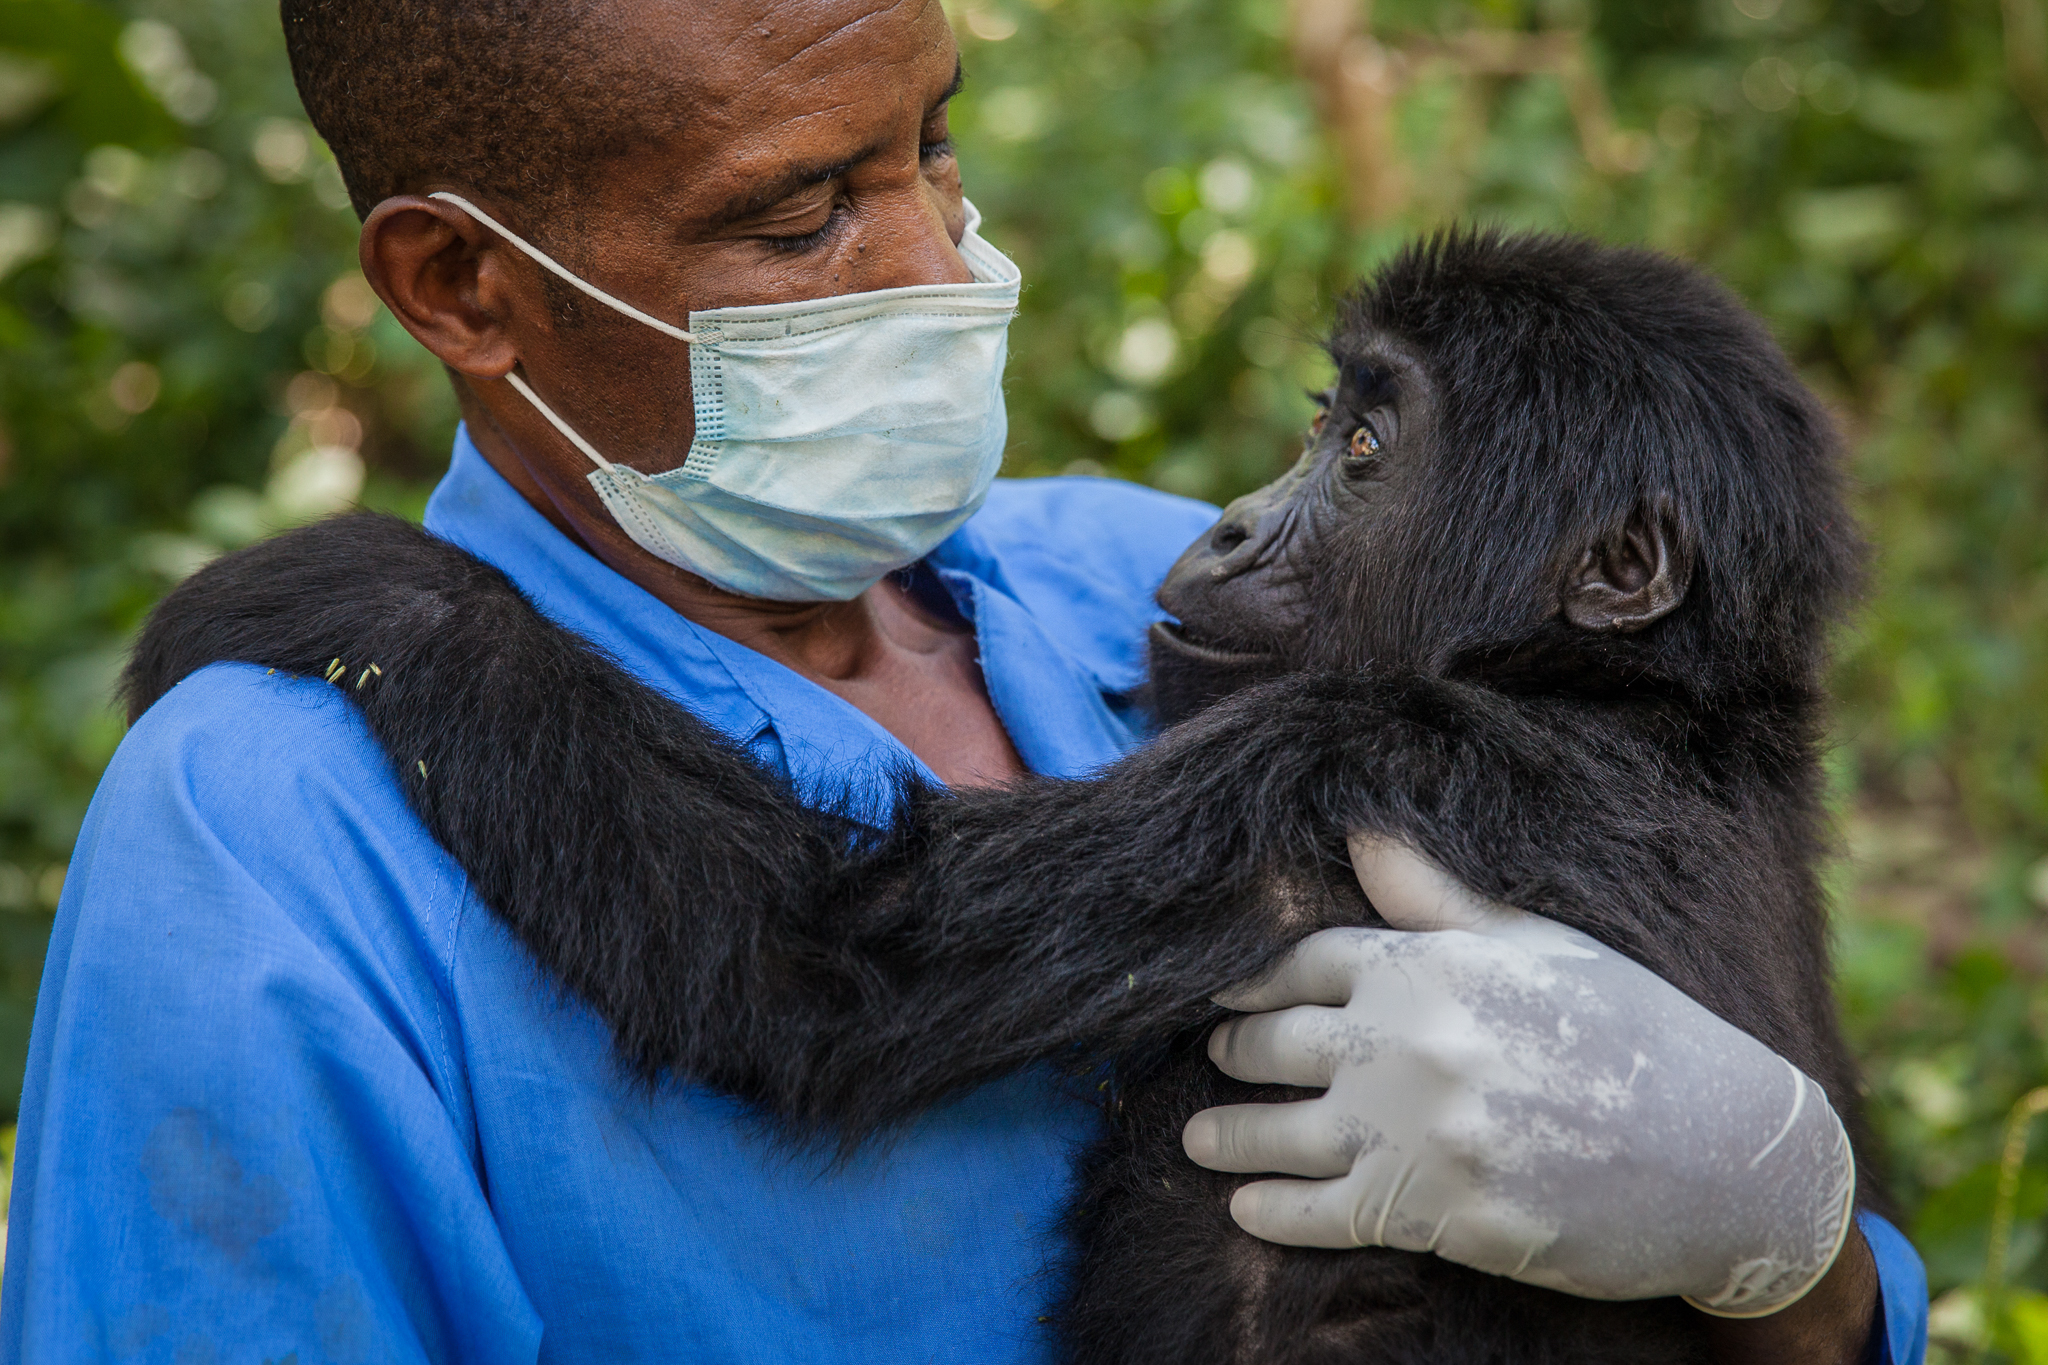 Kalonge wakes up from sedation to find herself in the safety of carer Phillip's arms, immediately reaching out to place her arms around him. Their bond is comparable to that she would have formed with her natural parents in the wild, and her trust for Phillip is complete.